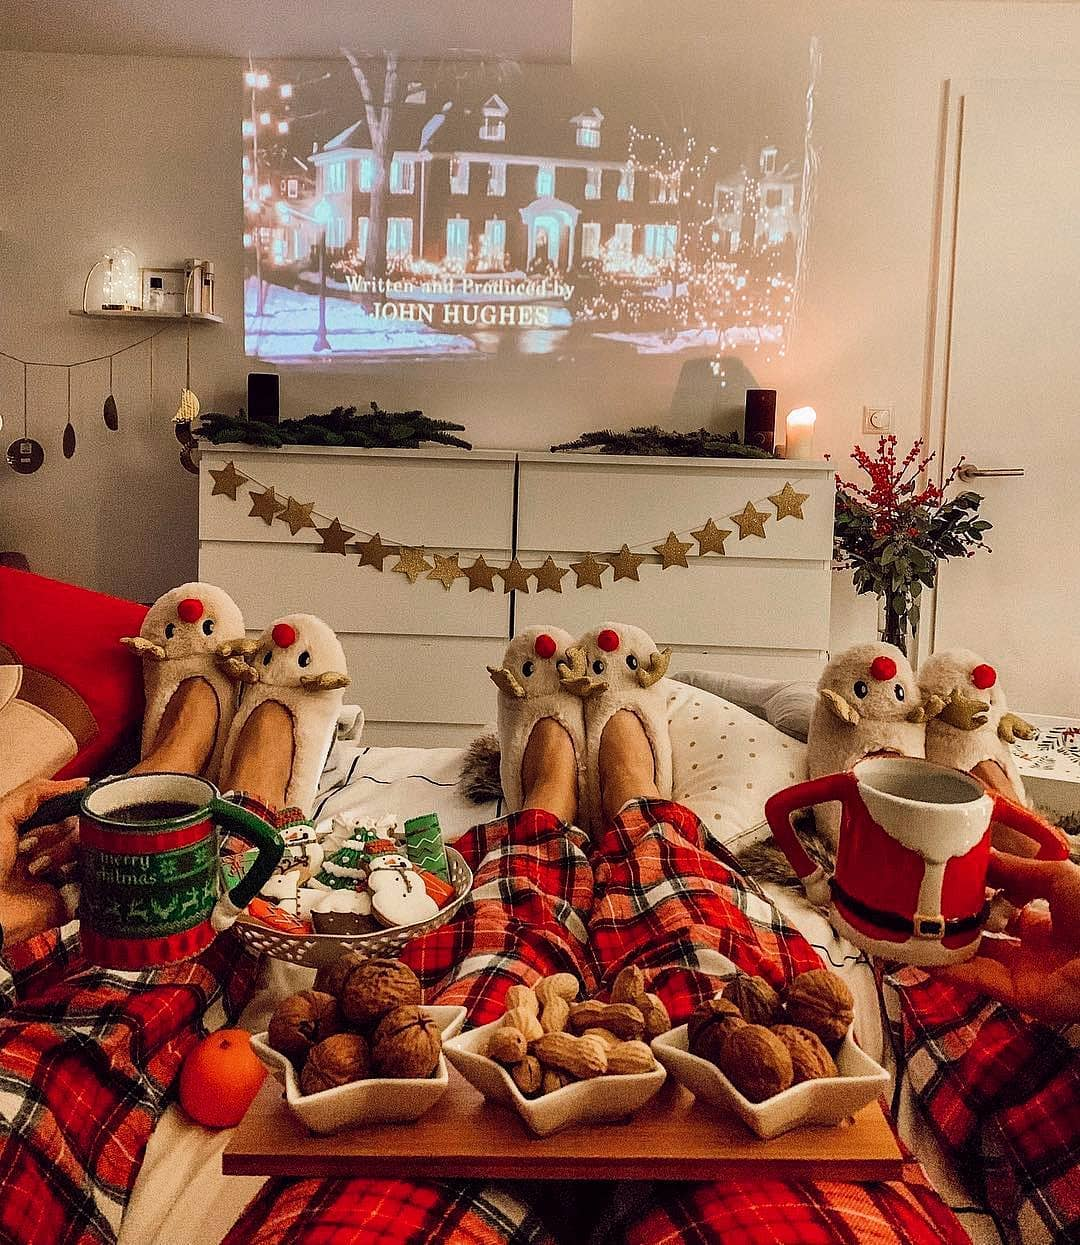 10 Best Christmas Movies To Watch With Your Kids